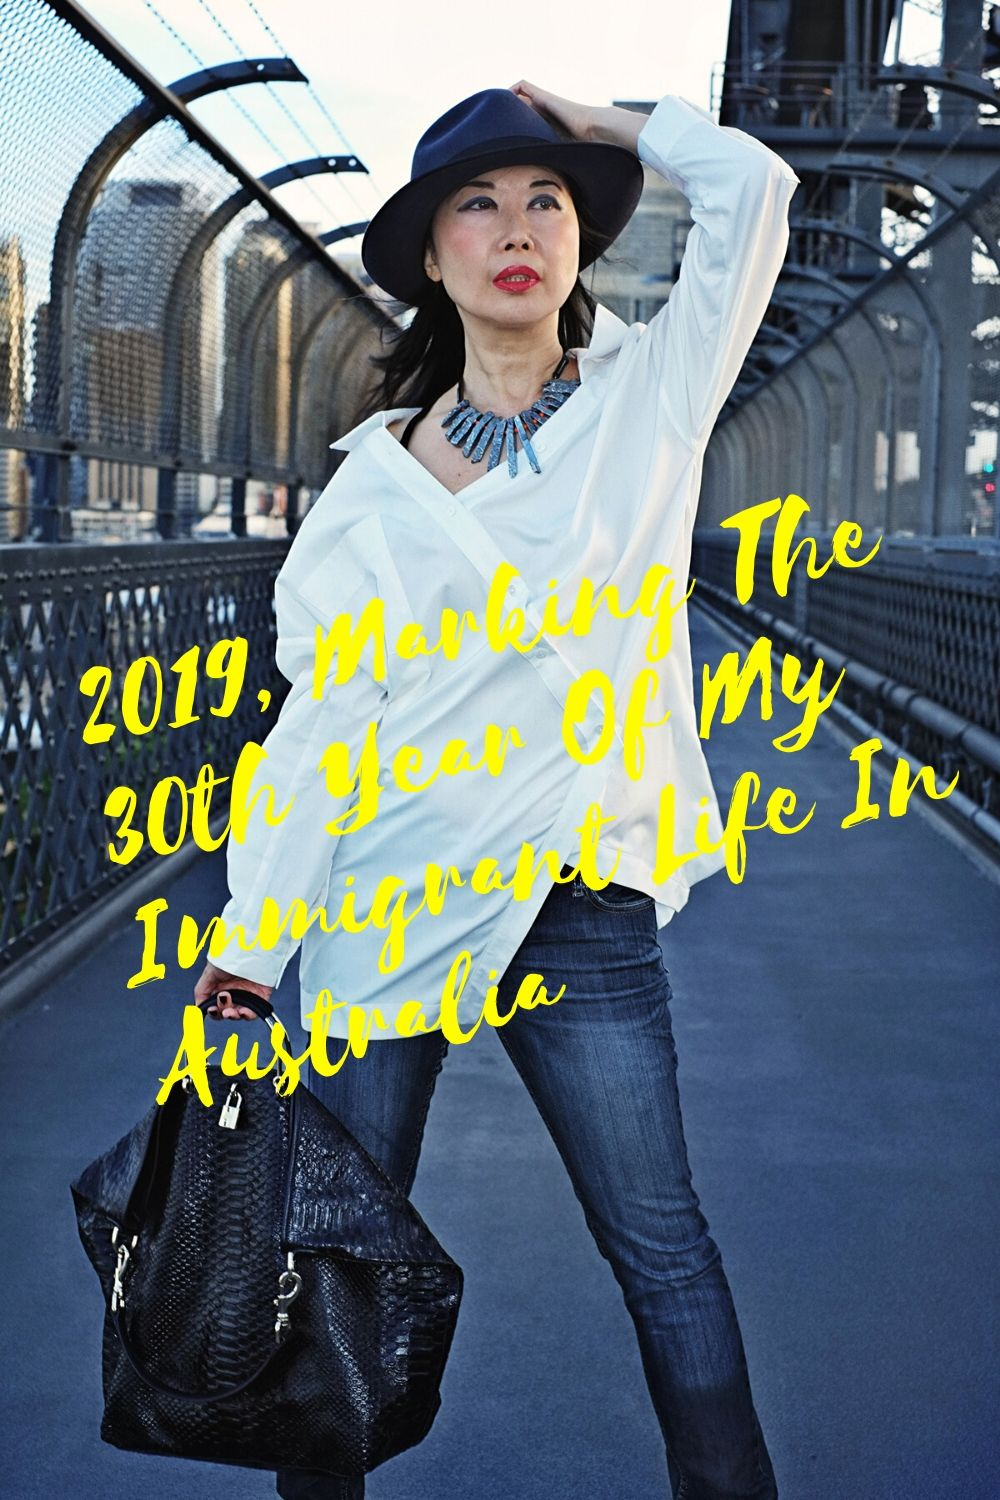 2019, Marking the 30th Year of My Immigrant Life in Australia. Portraits by fashion photographer Kent Johnson on location at Sydney Harbour Bridge.